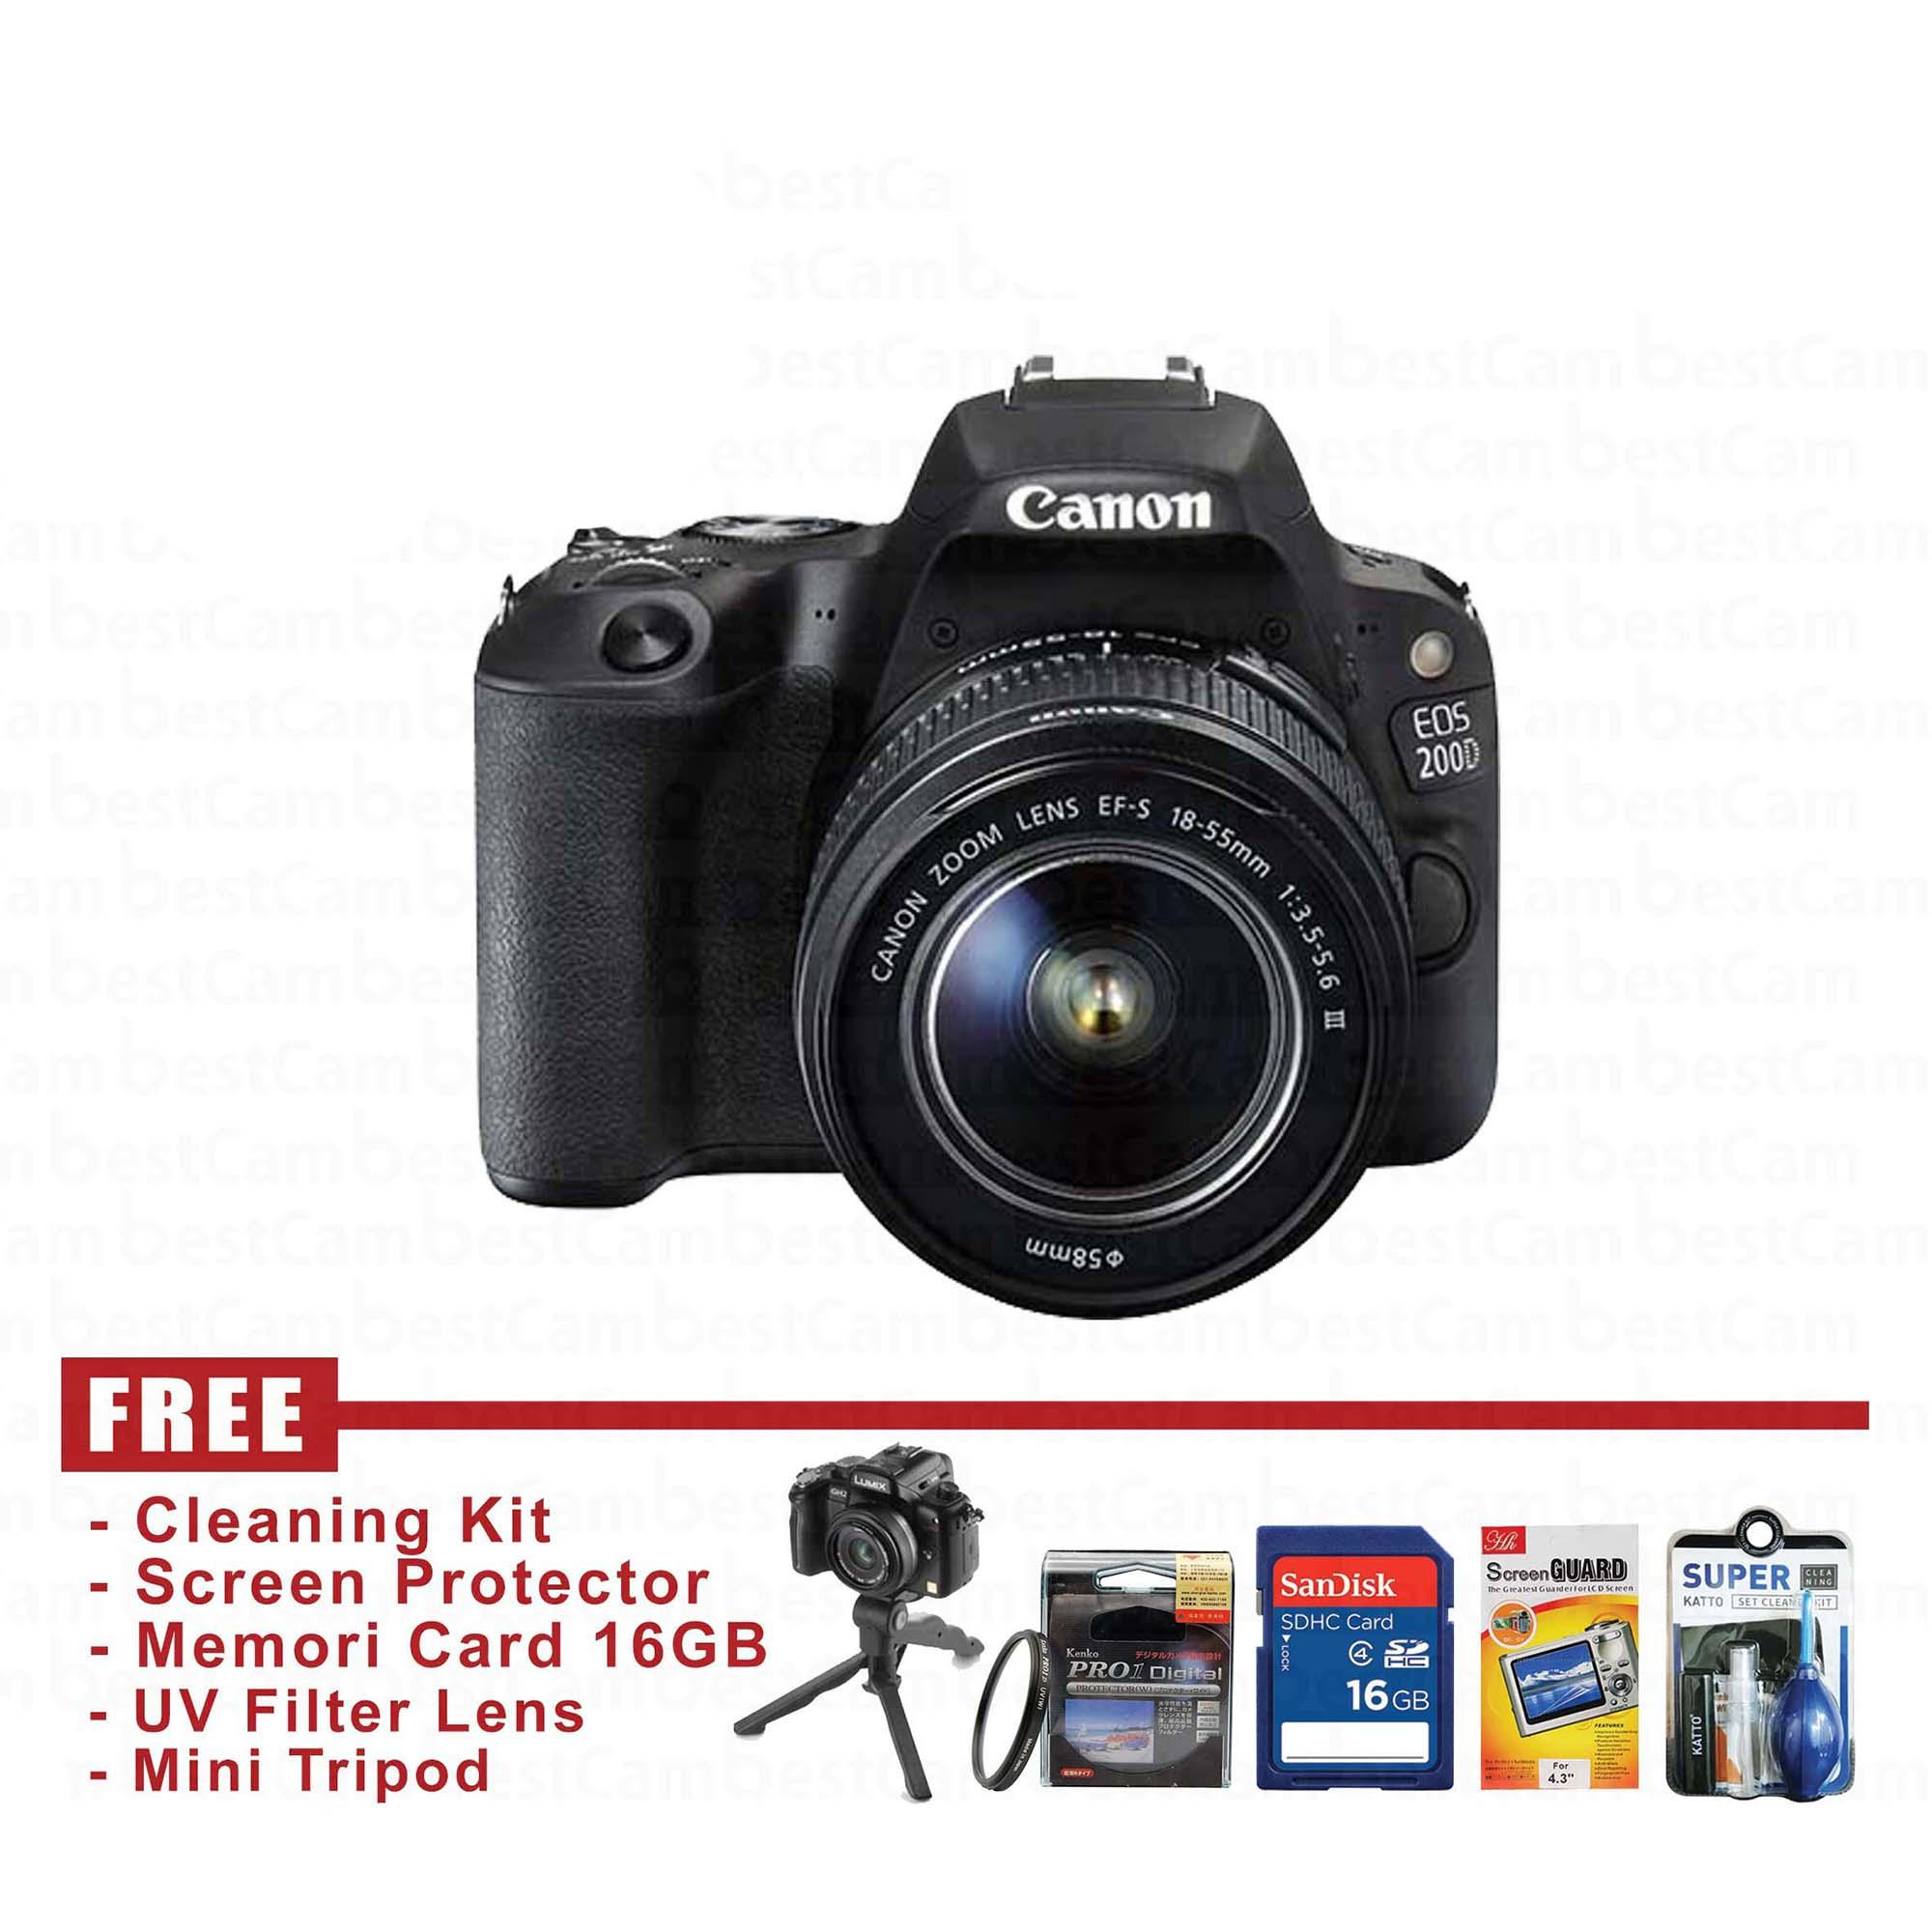 CANON EOS 200D KIT 18 55mm III FREE Accessories